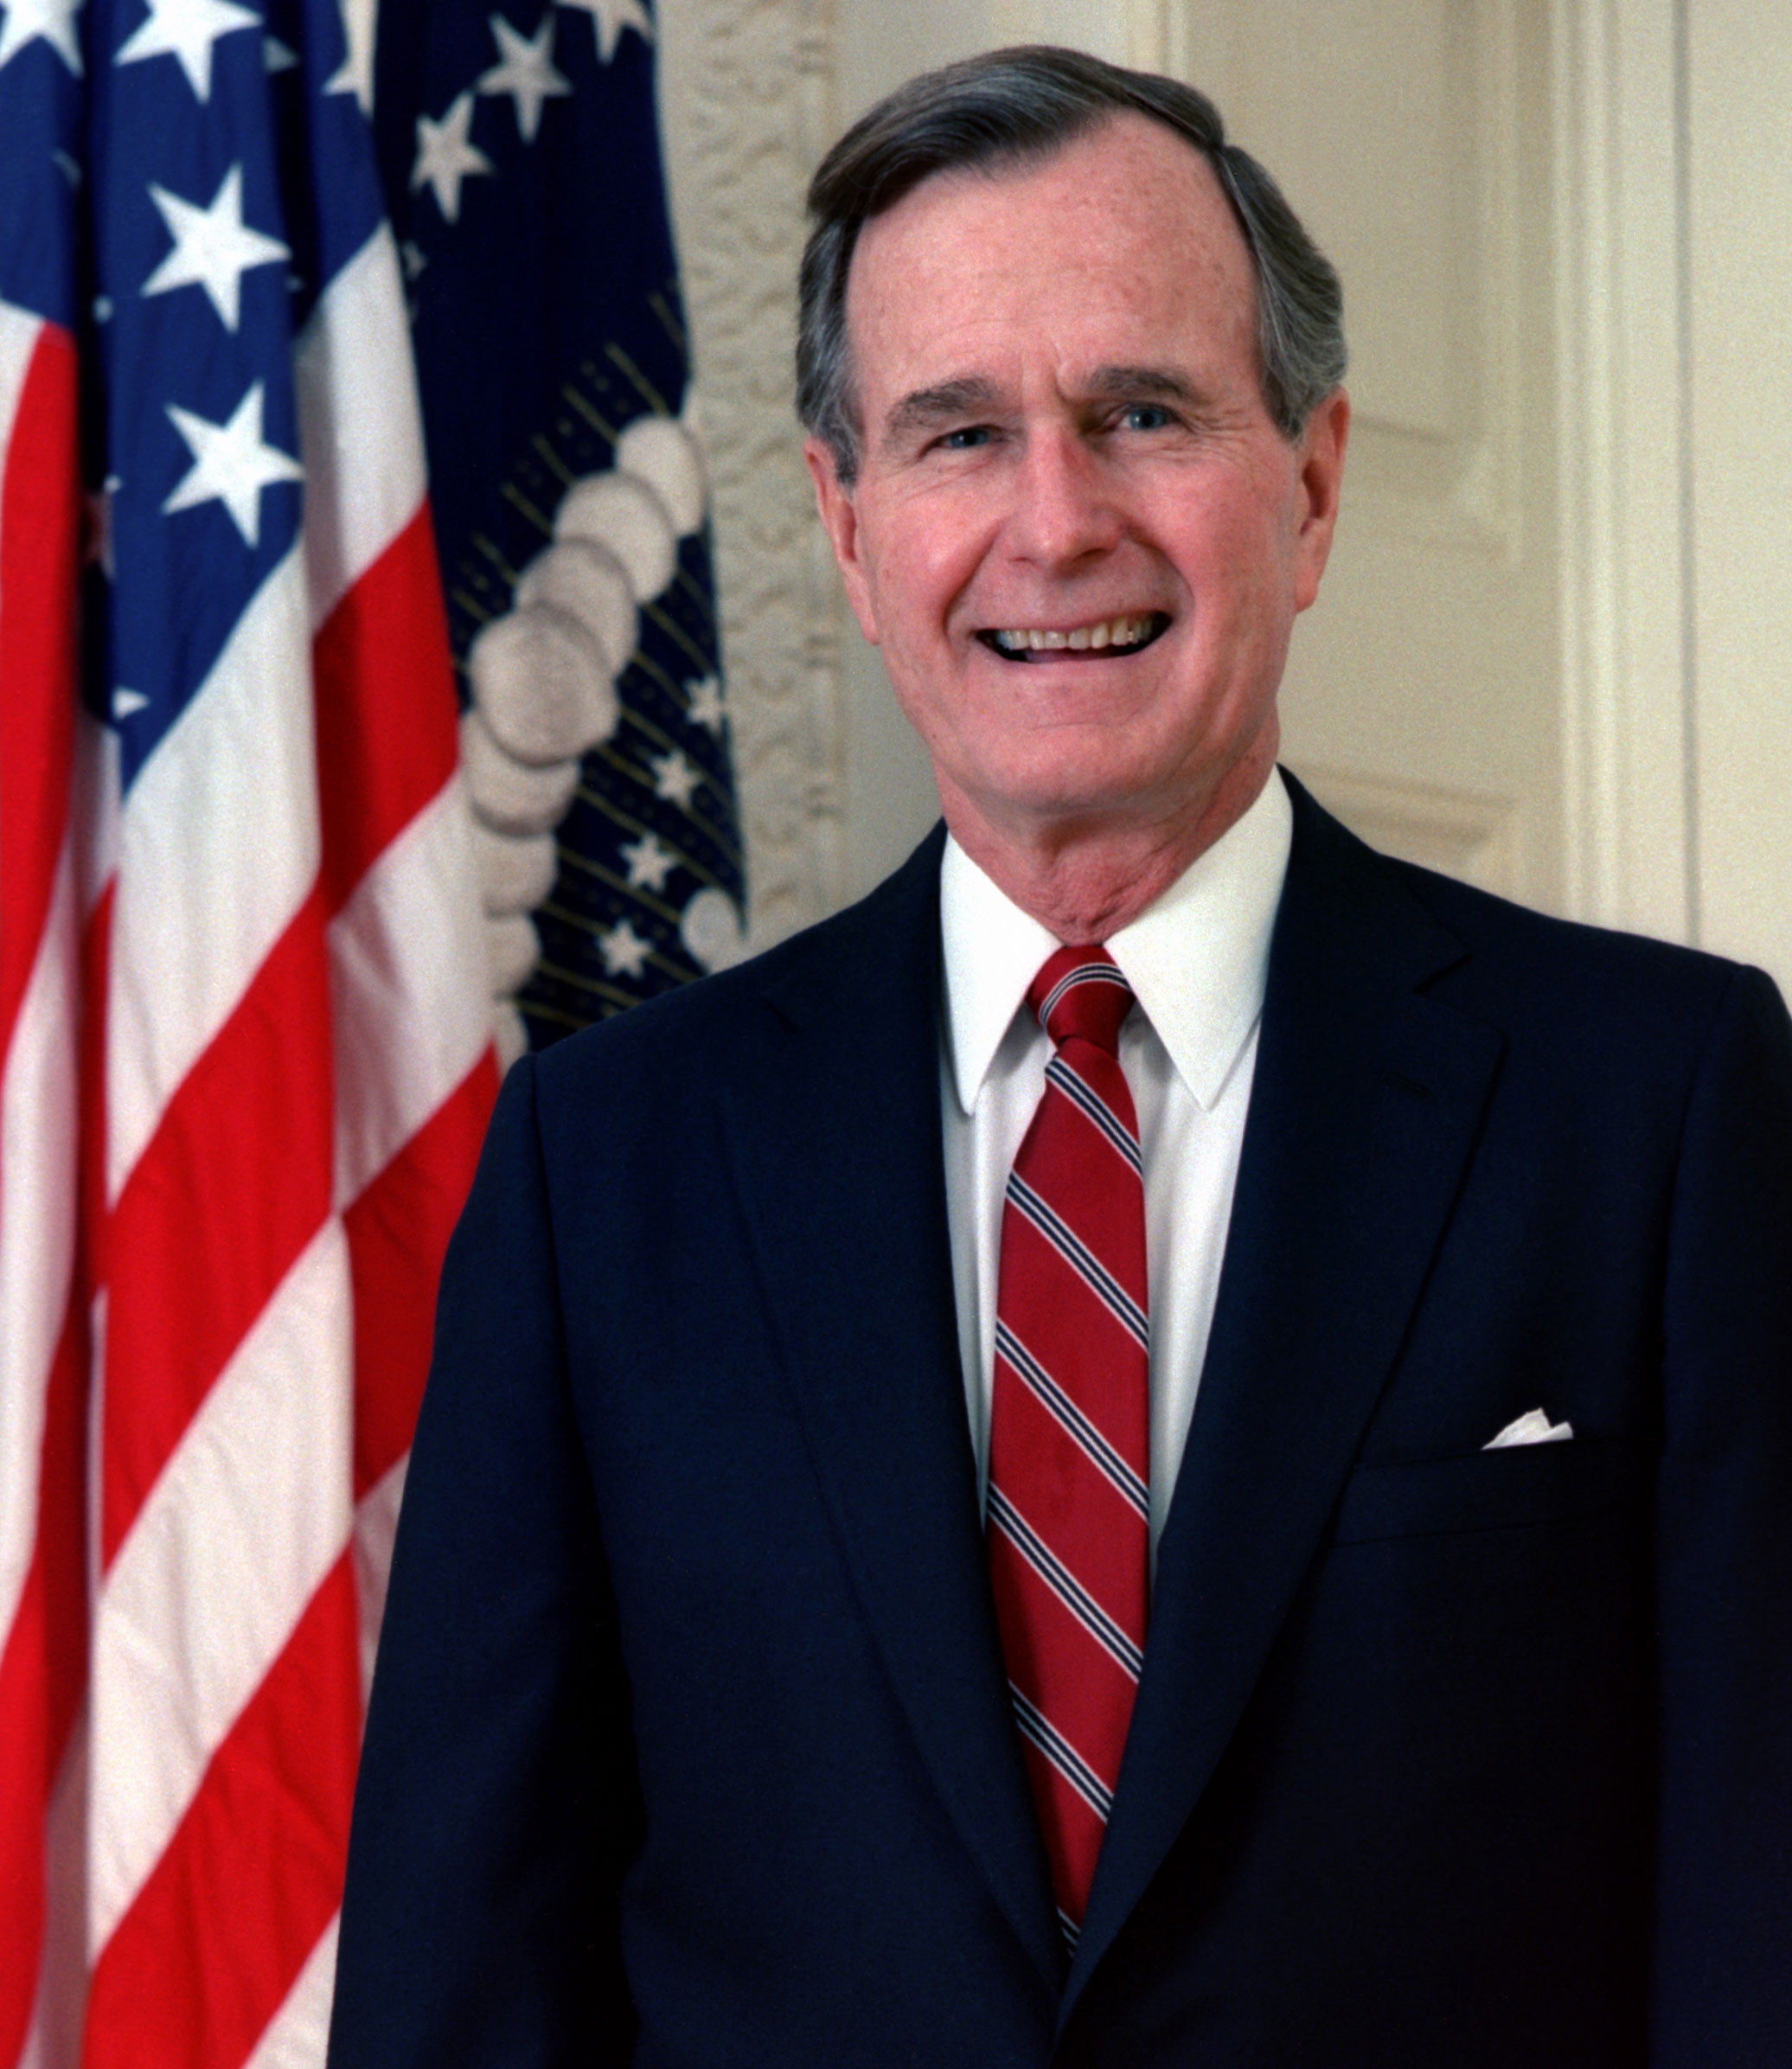 George_H._W._Bush_President_of_the_United_States_1989_official_portrait.jpg